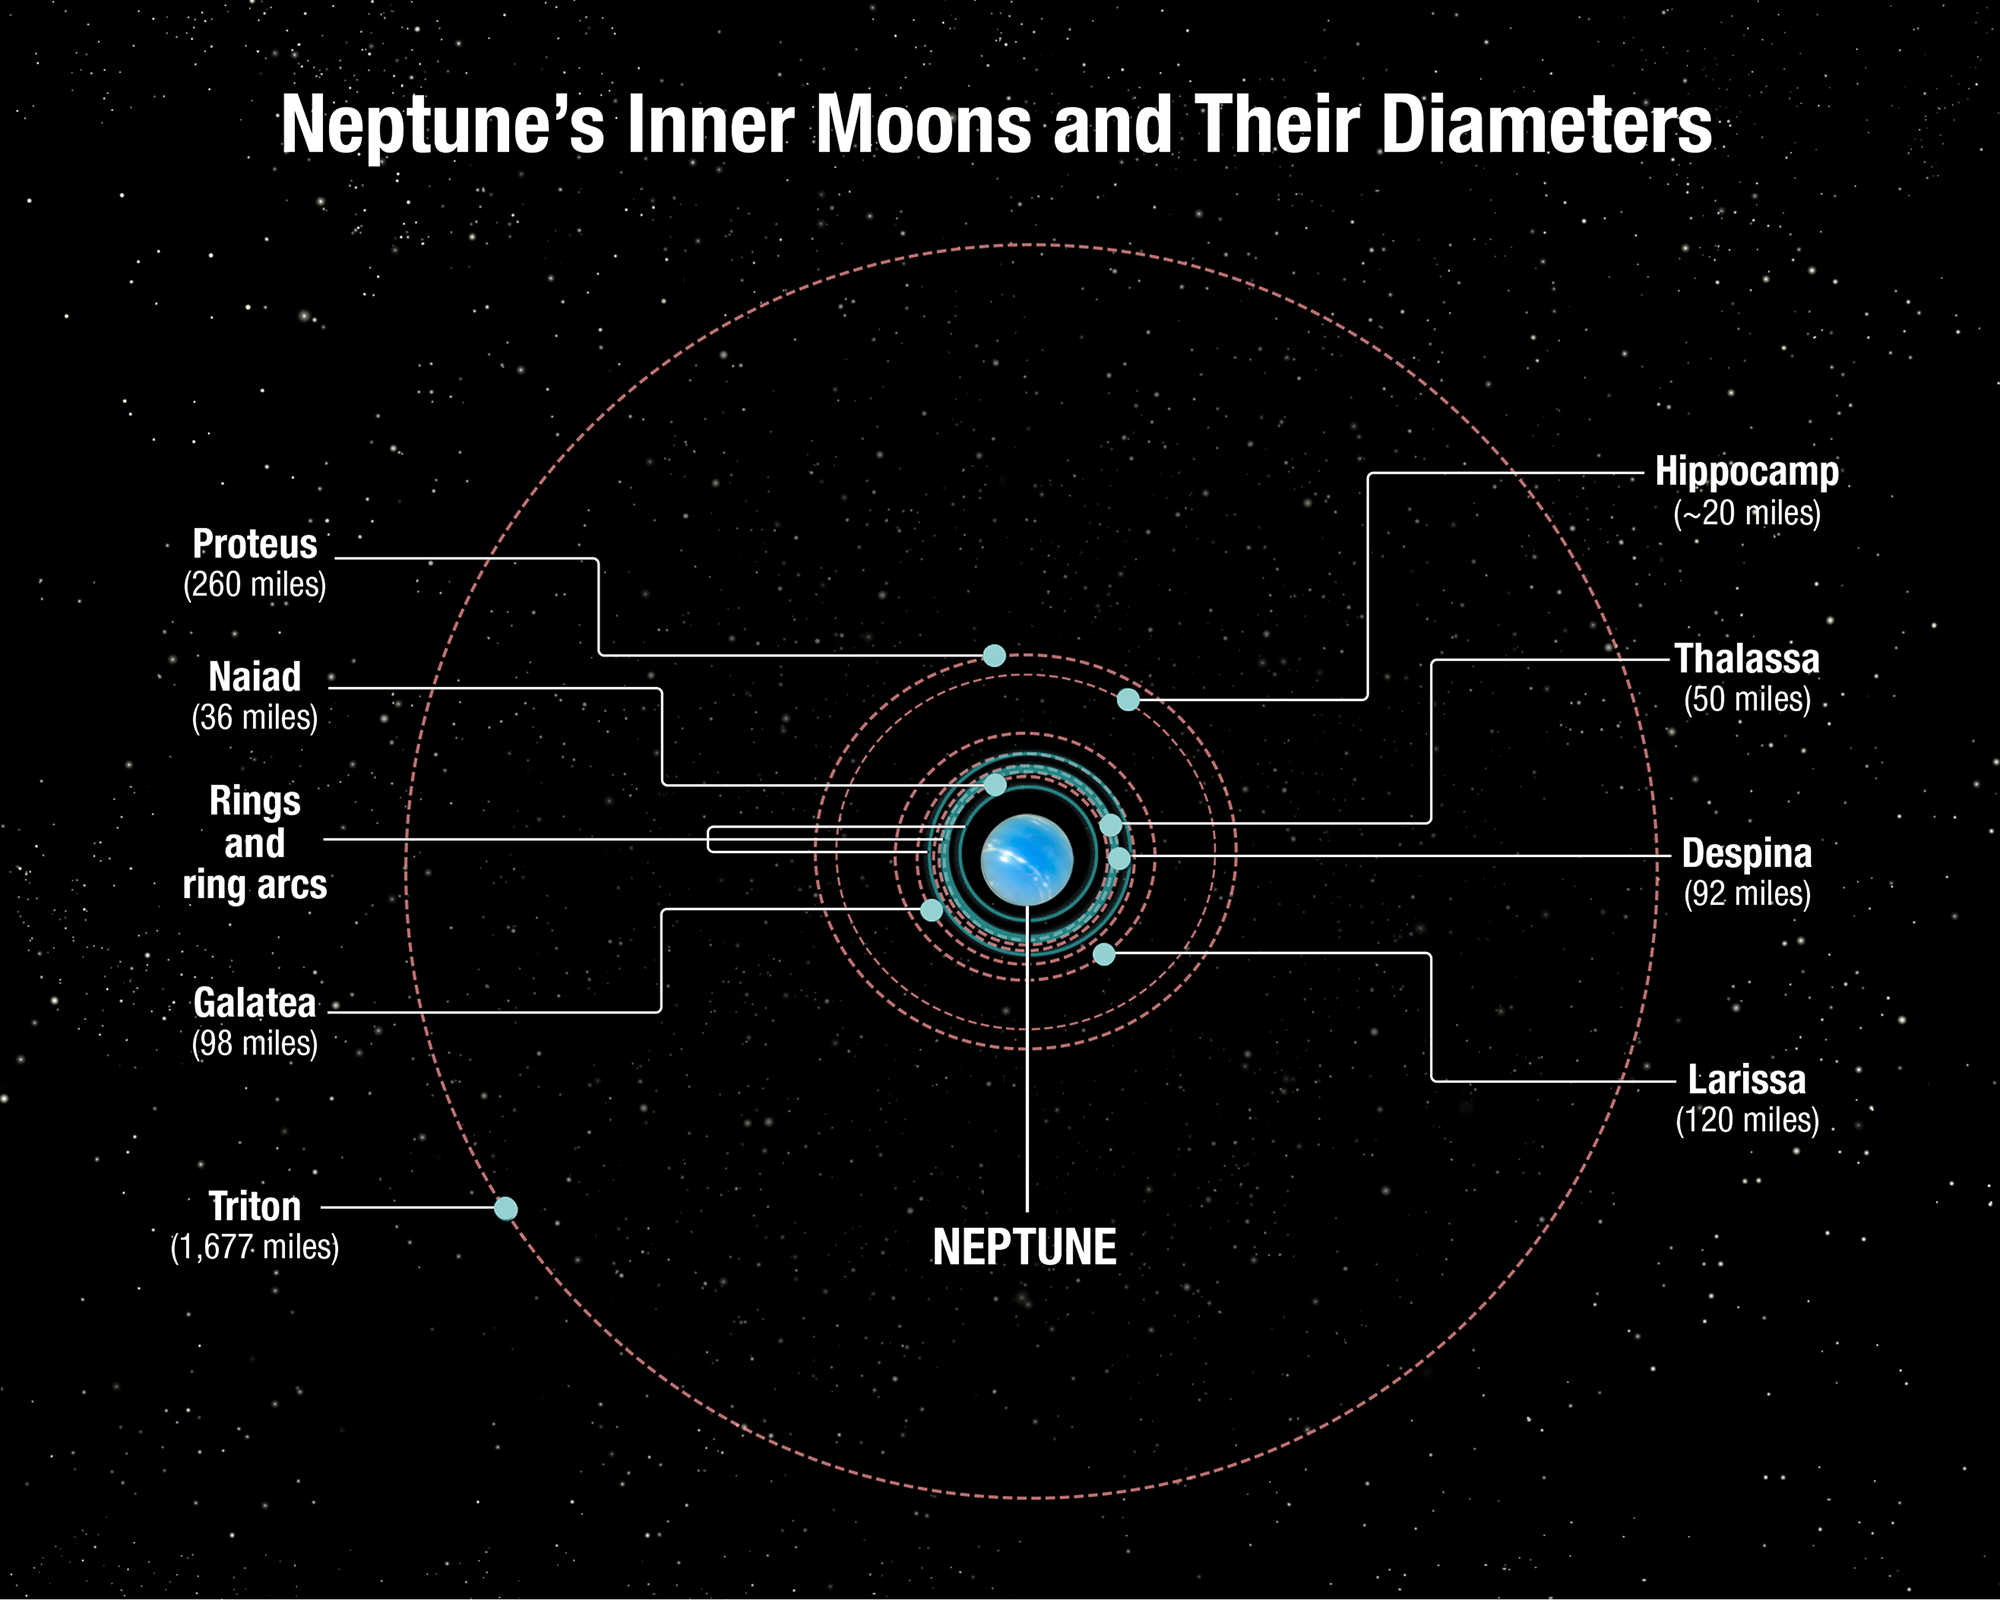 Neptune's inner moons and their radii, along with the captured Kuiper Belt Object Triton.